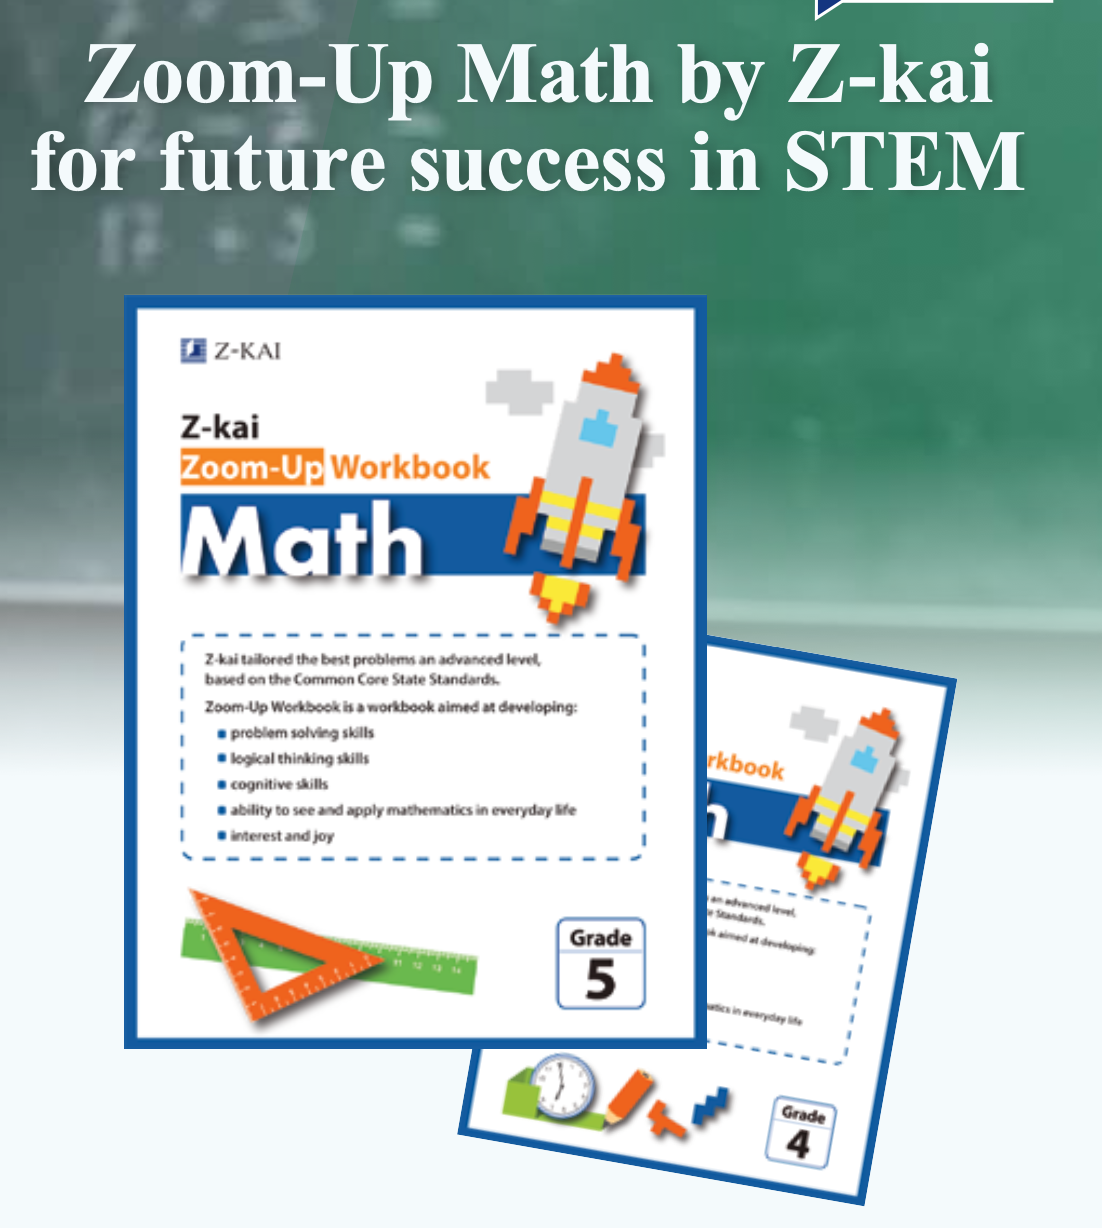 Zoom-Up Math by Z-kai future success in STEM!!